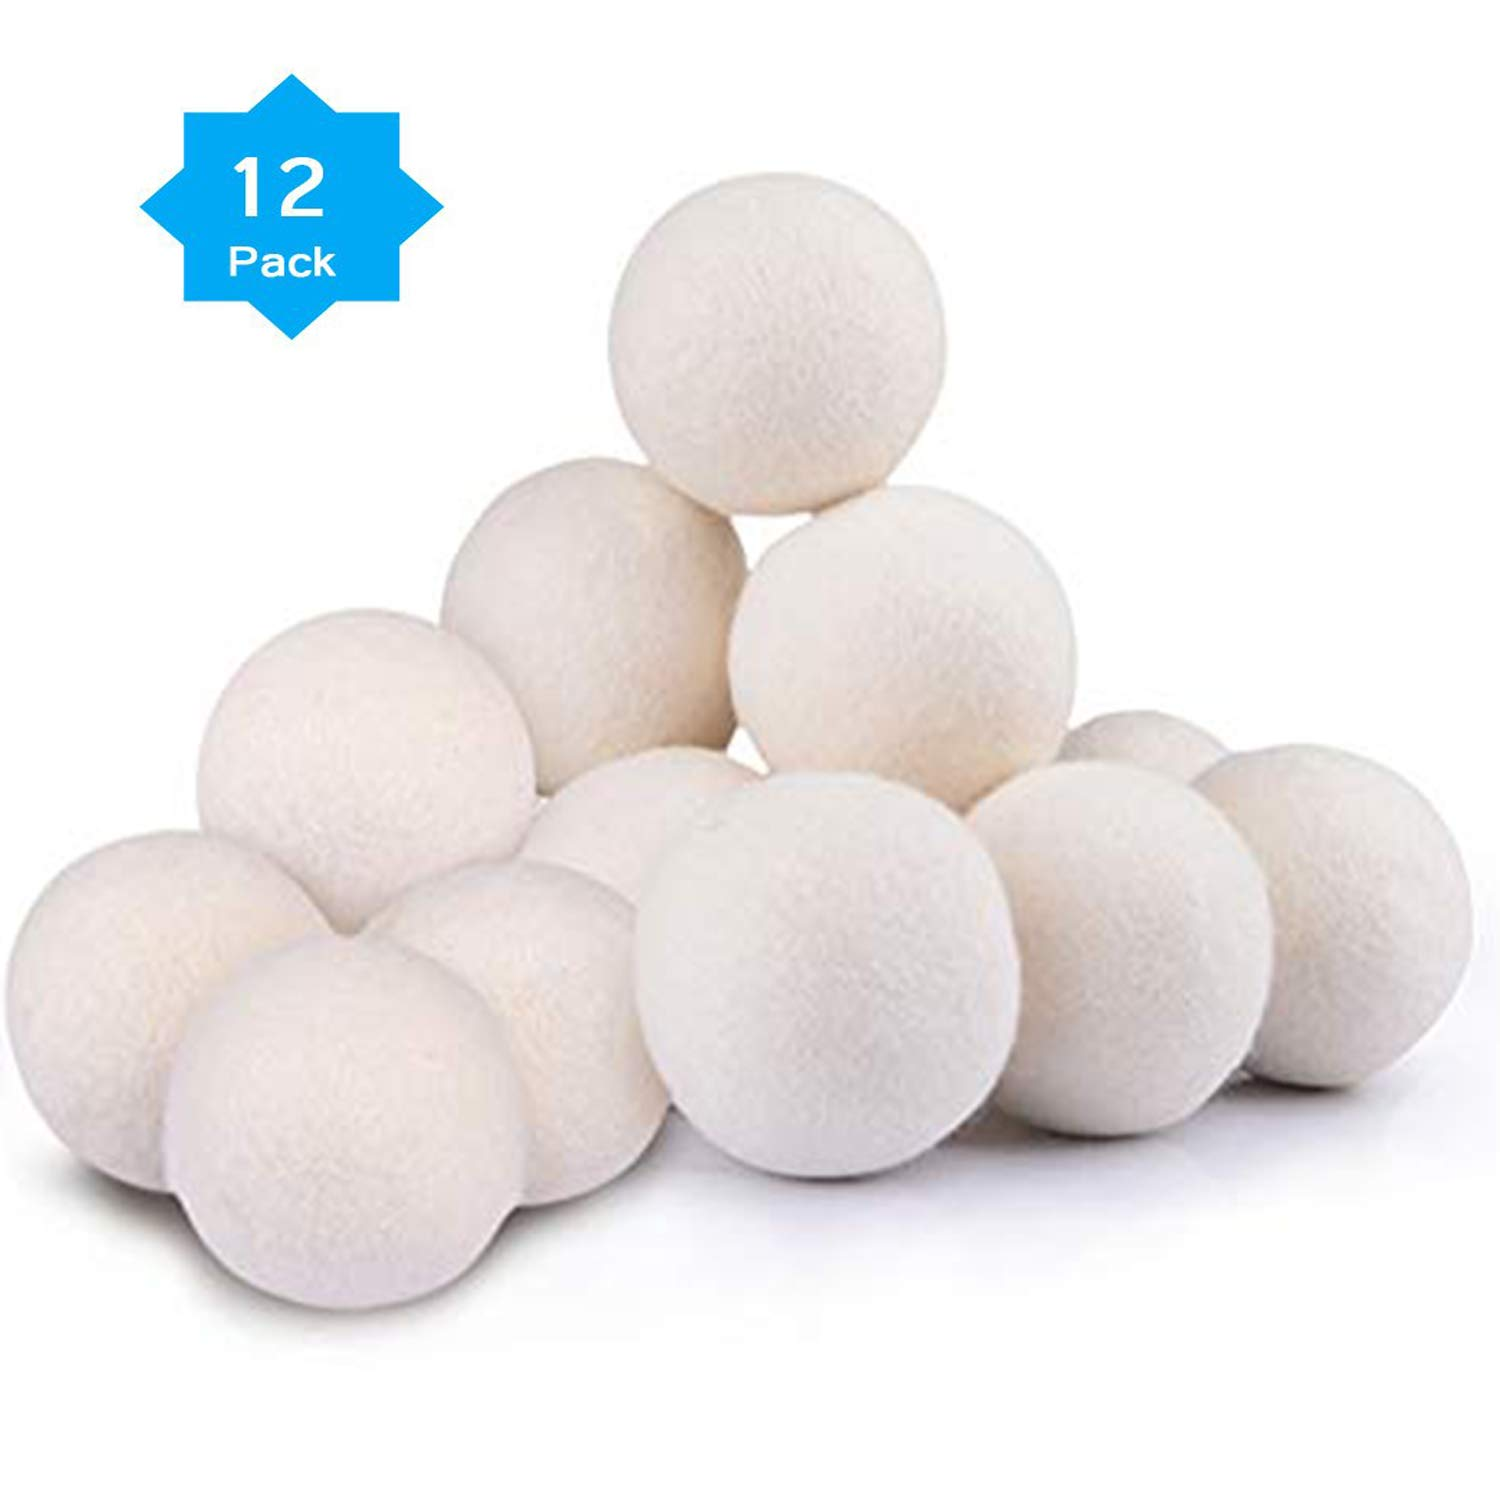 Wool Dryer Balls Organic XL 12-Pack, Premium Reusable Fabric Softener, Reduce Wrinkles Saves Drying Time, Static Cling, Hypoallergenic, Chemical Free